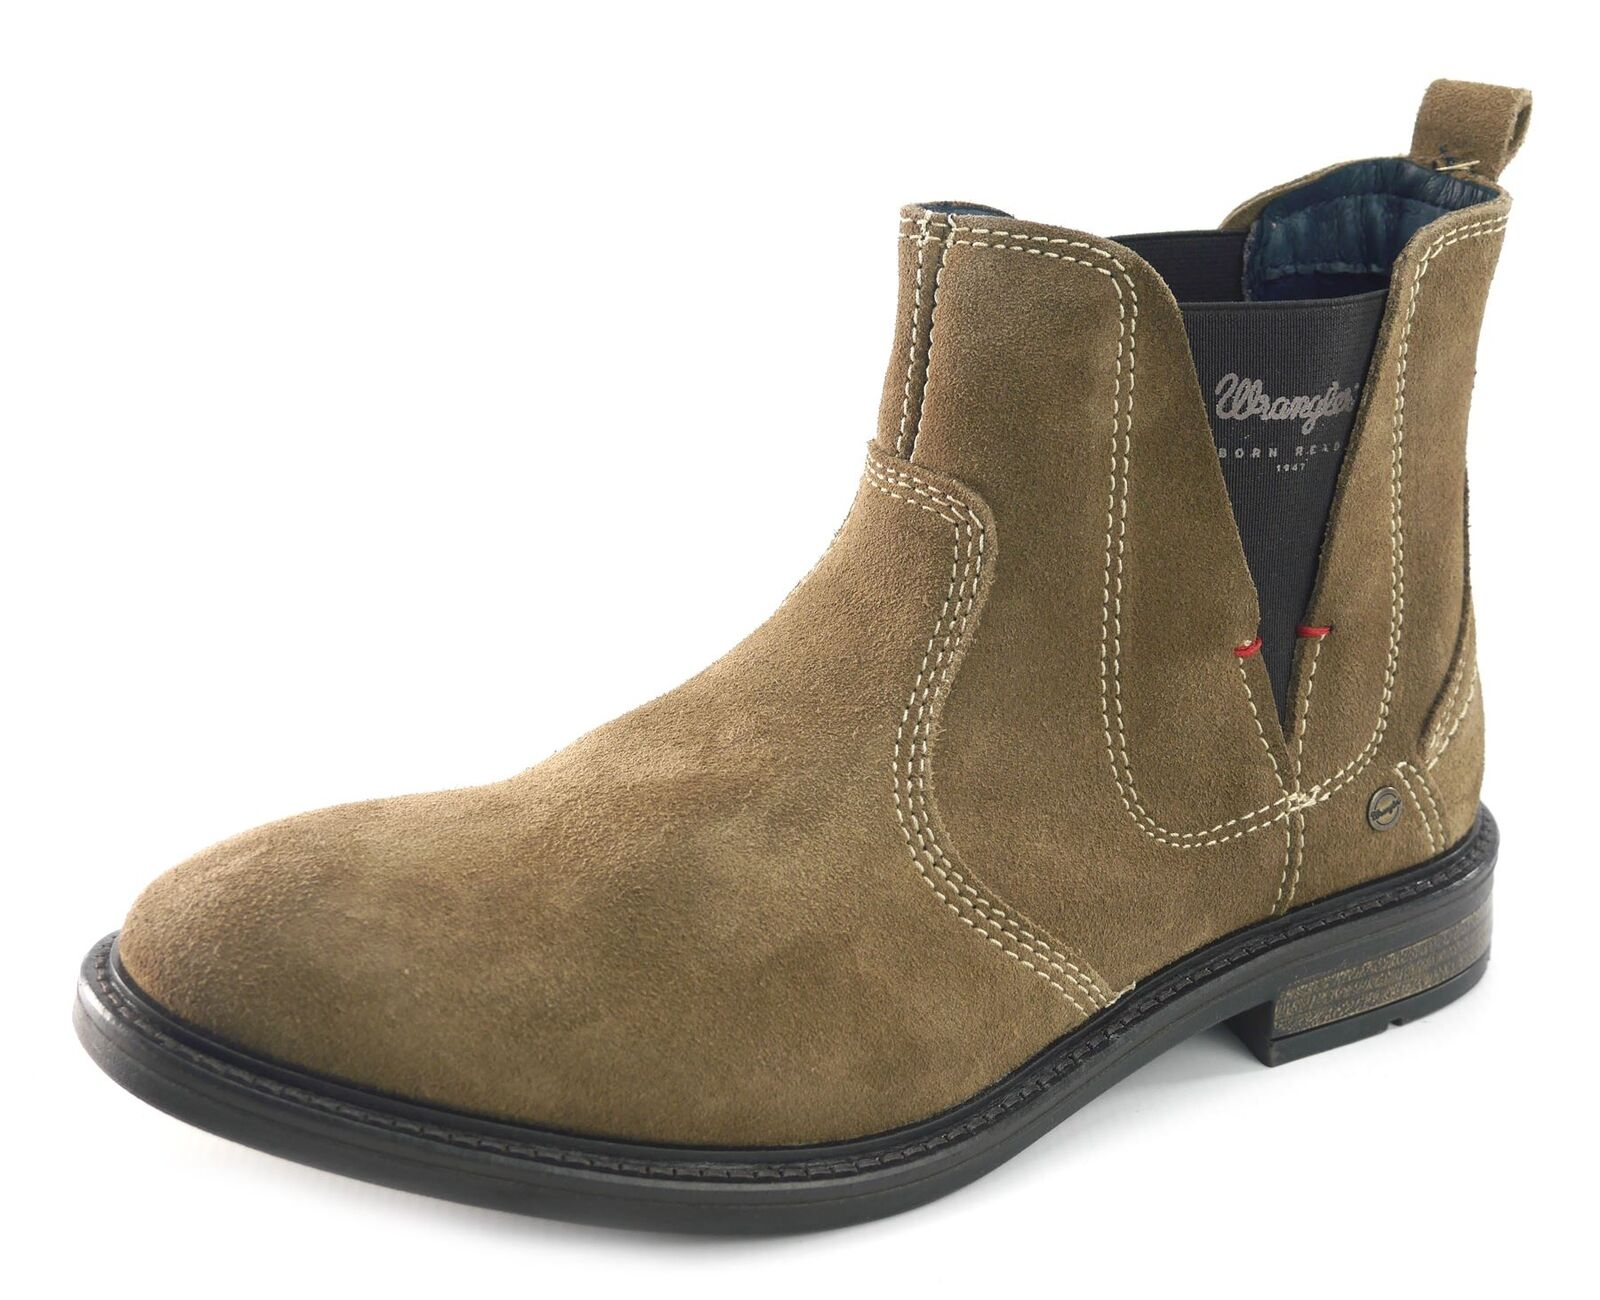 Wrangler Roll Chelsea Suede Mens Leather Pull On Stiefel Taupe